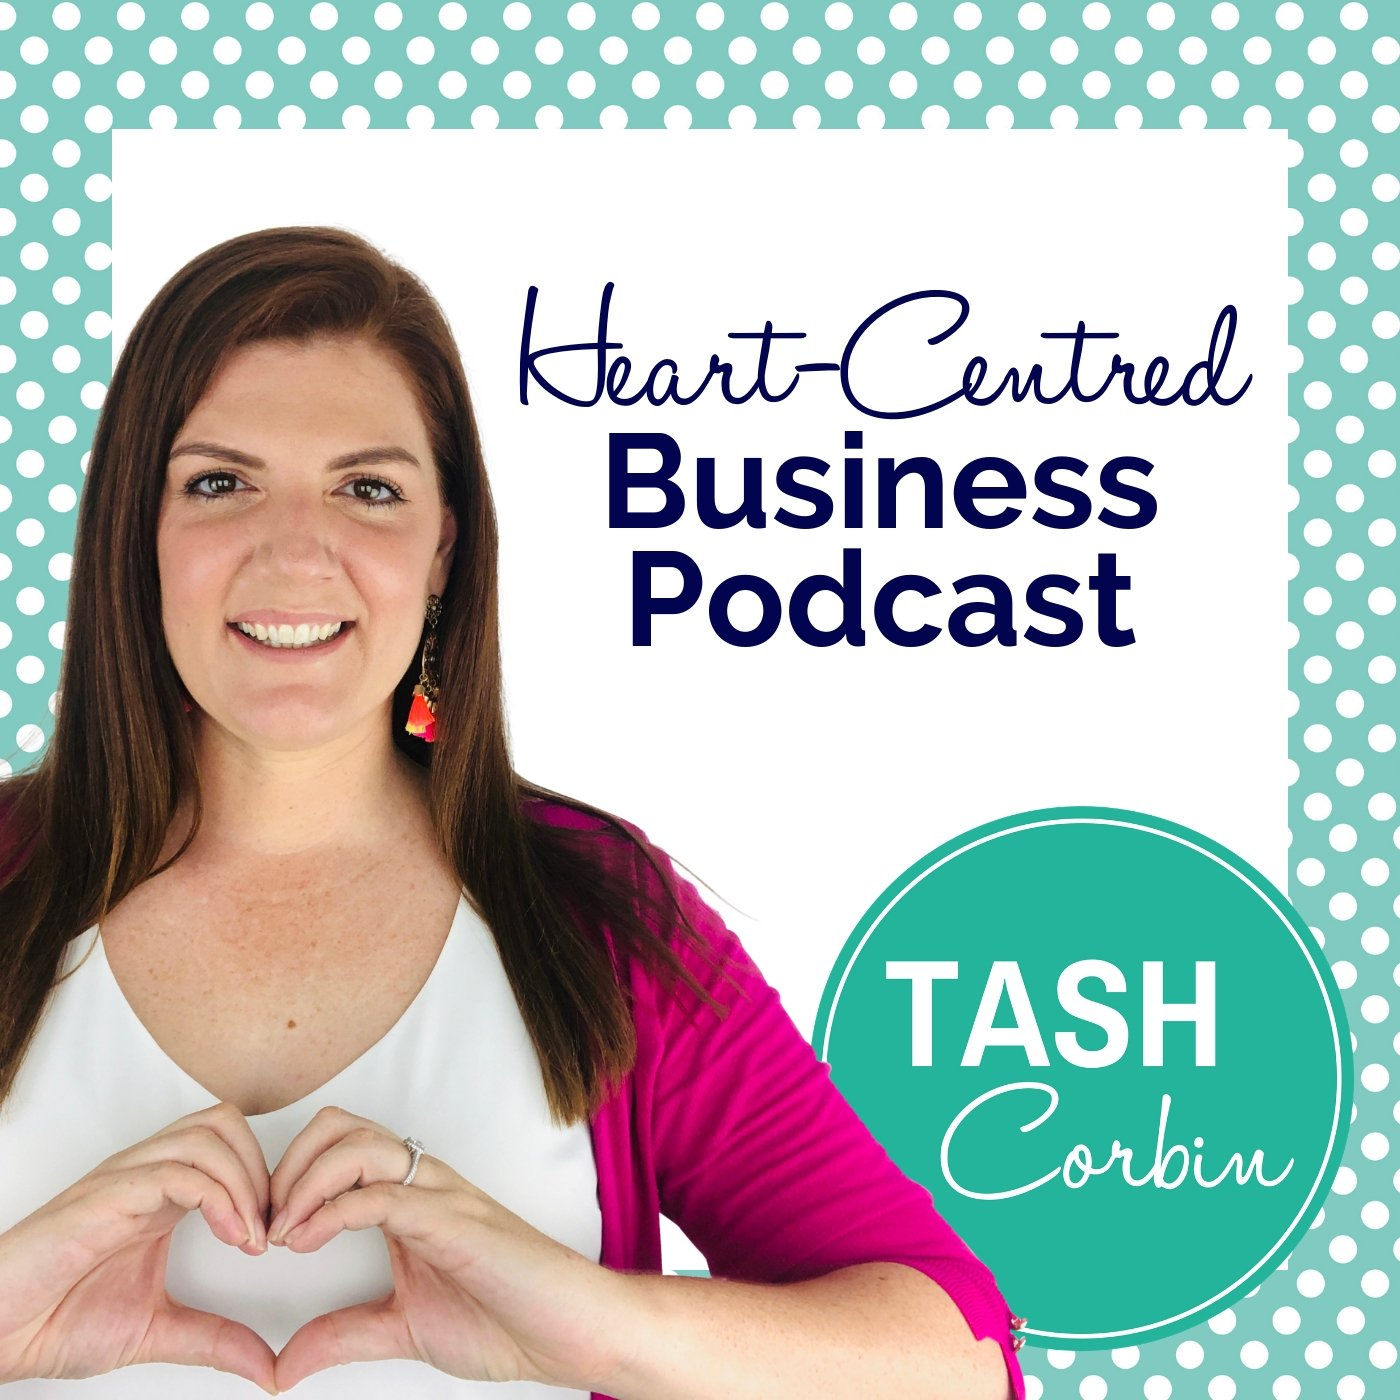 Heart-Centred Business Podcast with Tash Corbin